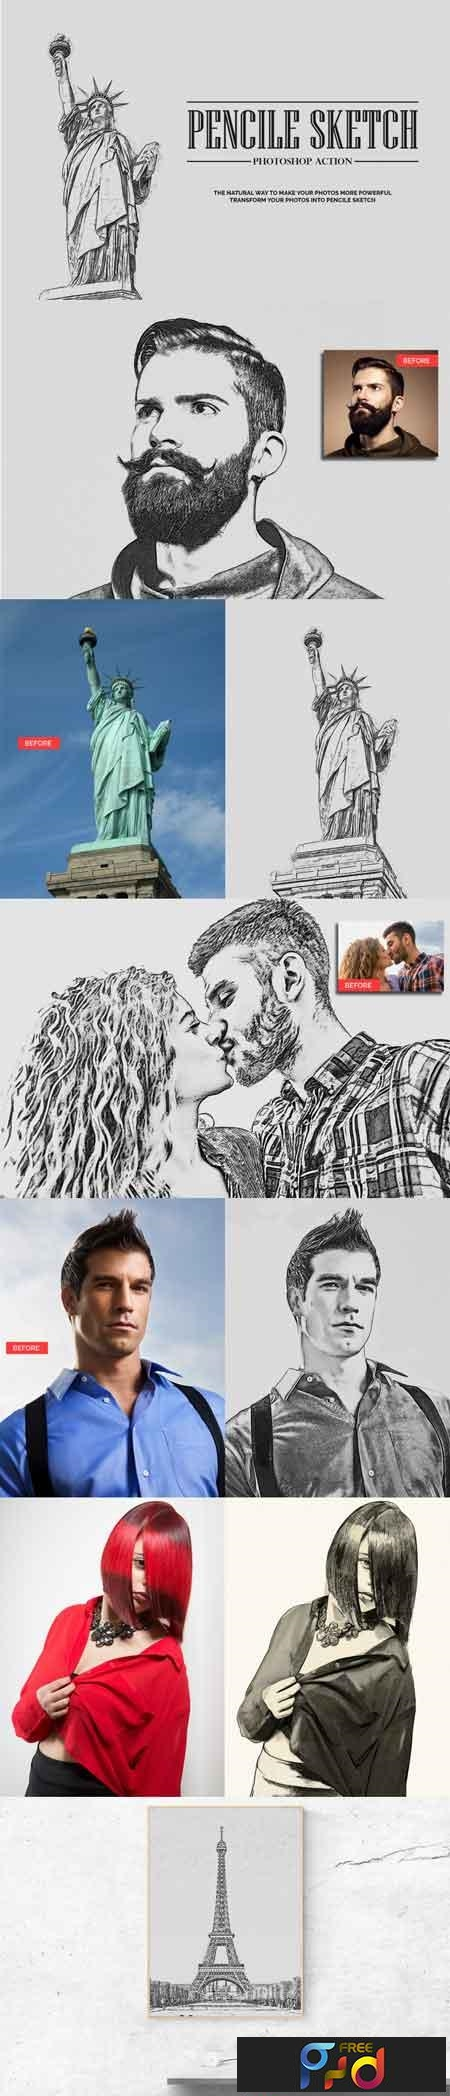 Pencil sketch photoshop action 3505096 1